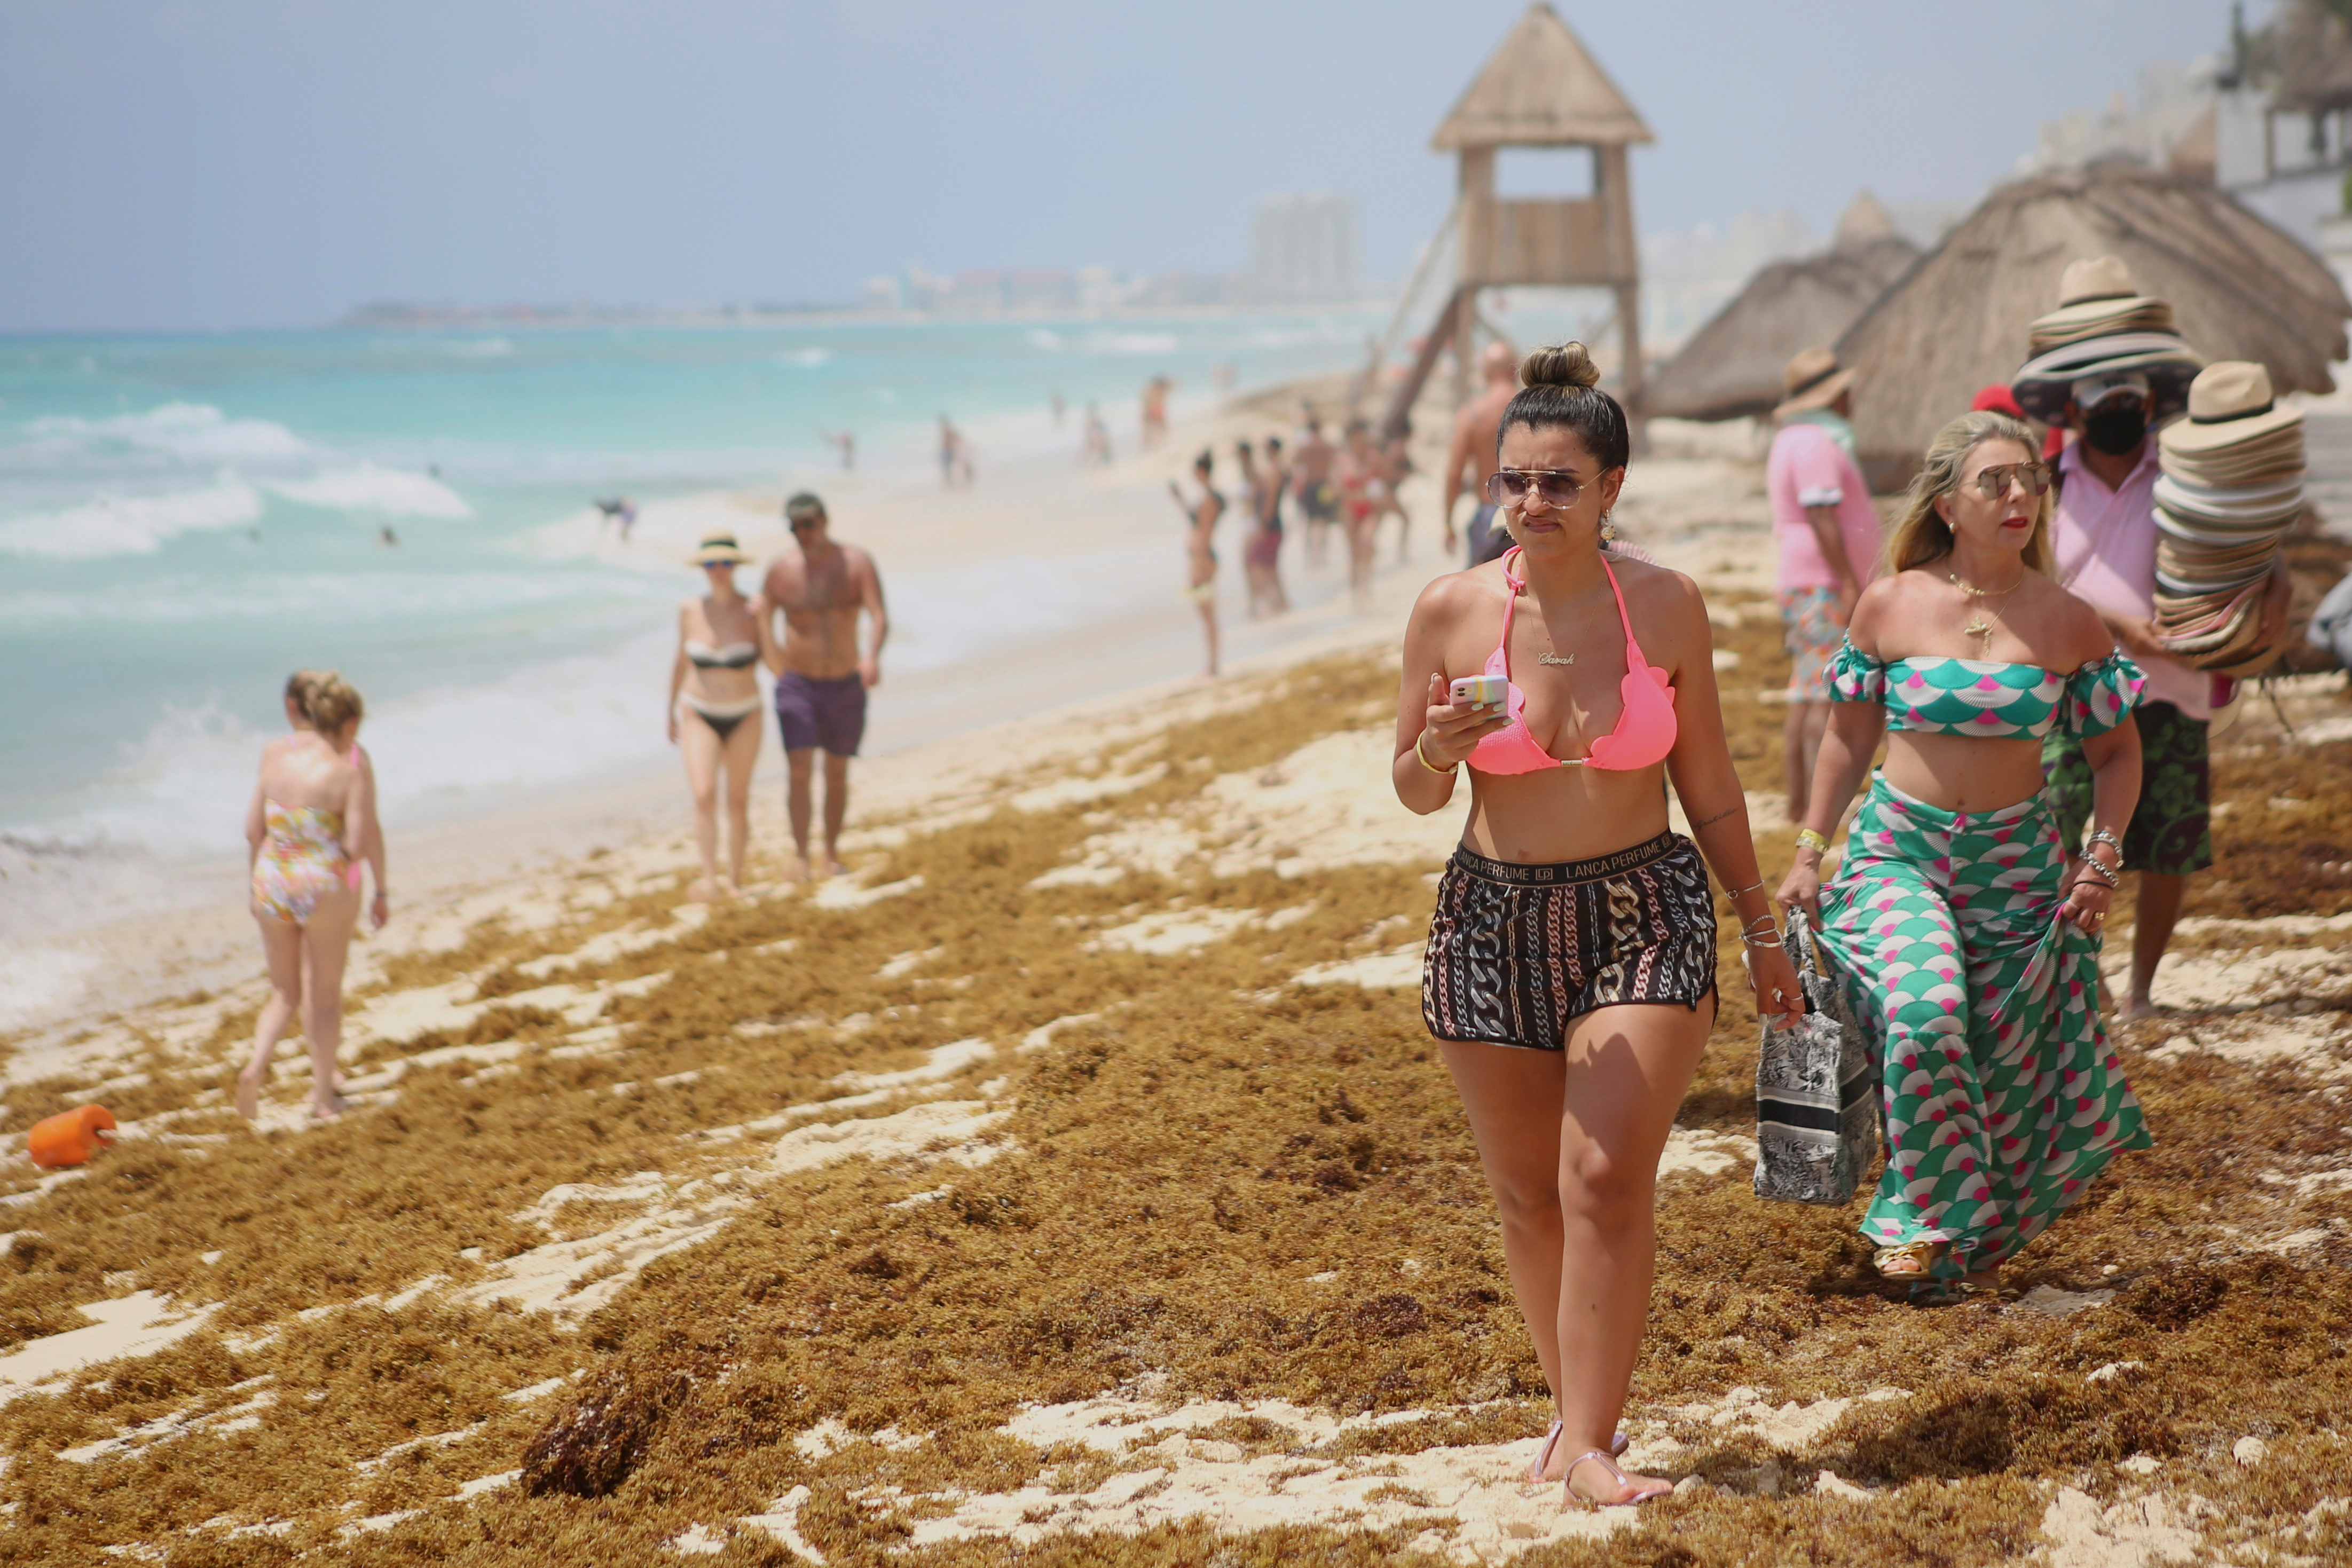 Tourists walk over sand strewn with sargassum at Ballenas Beach in Cancun, Mexico July 23, 2021. Picture taken July 23, 2021. REUTERS/Paola Chiomante